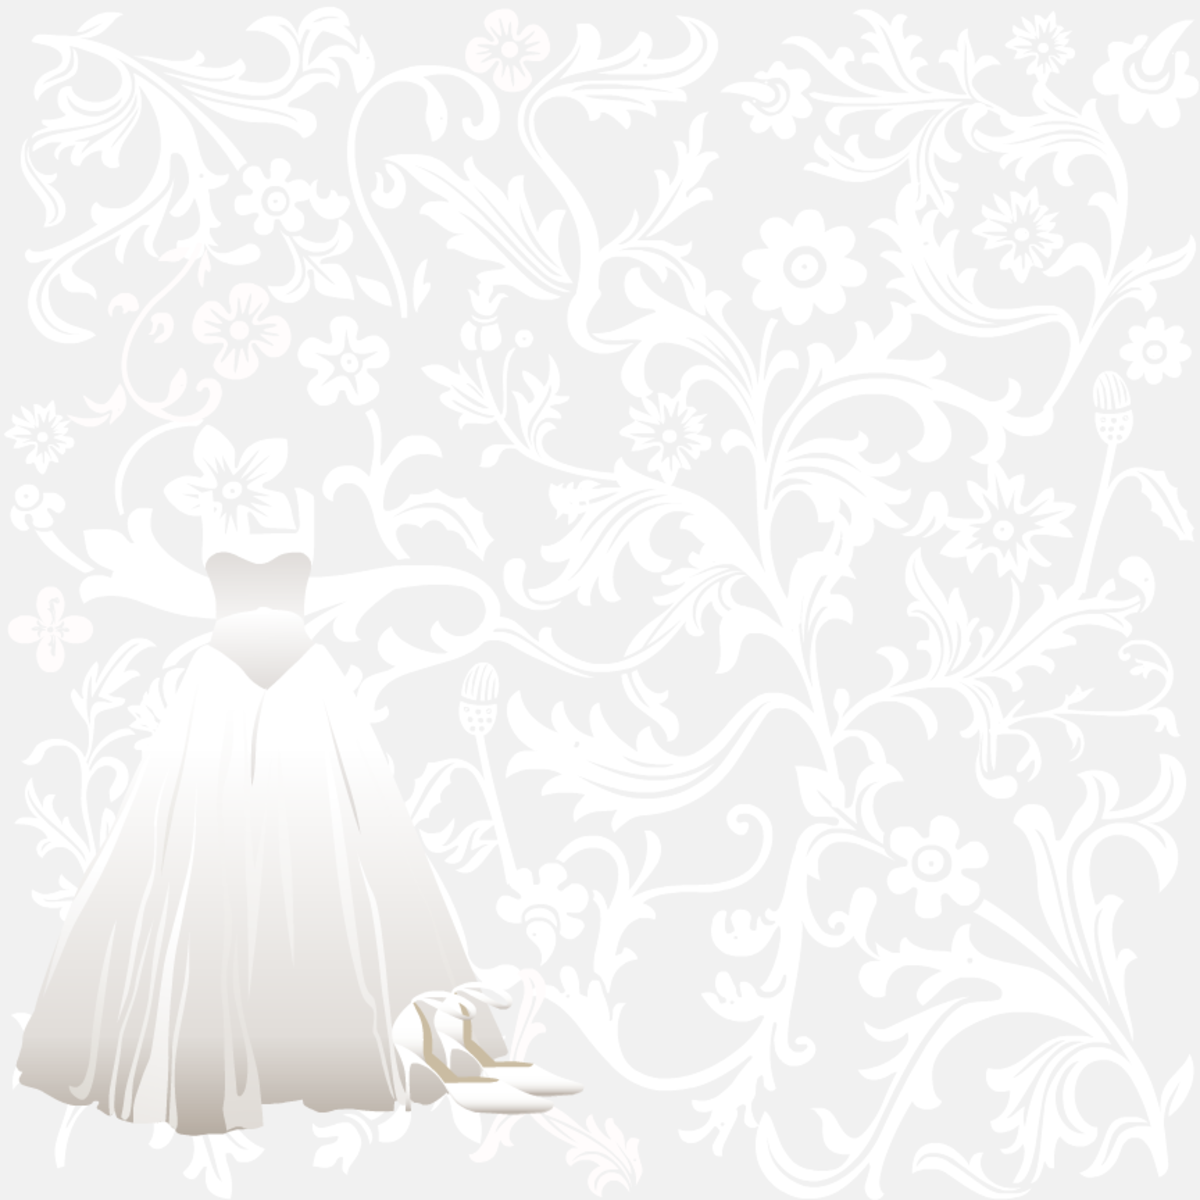 Classic silver floral wedding scrapbook paper with wedding gown and high-heeled shoes